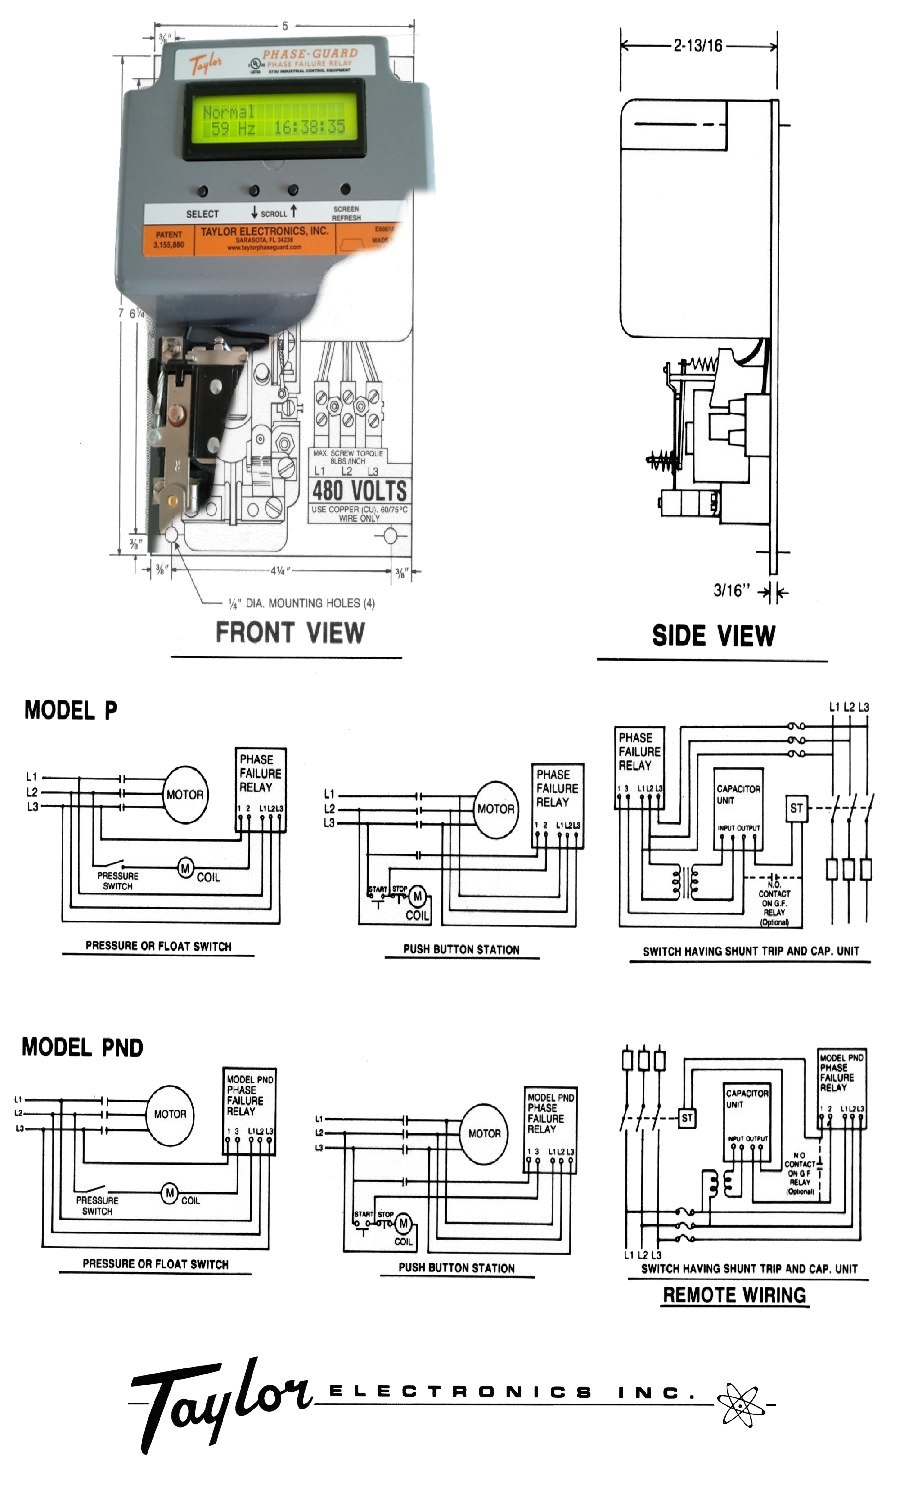 hight resolution of wiring diagram taylor electronics inc taylor dunn b2 48 wiring diagram taylor wiring diagram